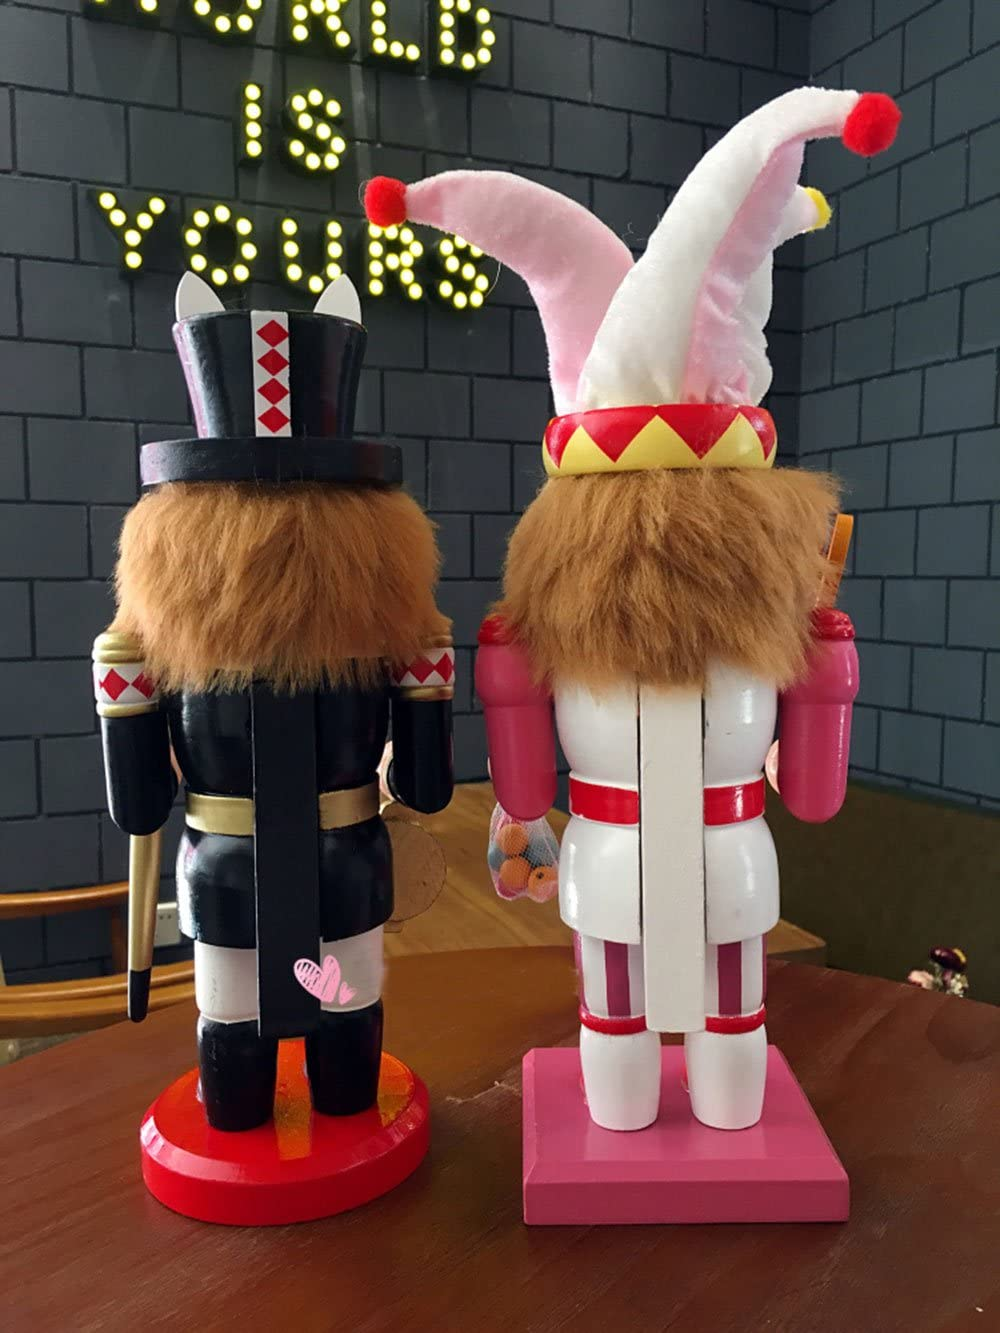 gelvs 11.8 inches Holiday Ornament Nutcracker Puppet Home Decoration Mr Bunny Wooden Figure Party Ceremony Figurine